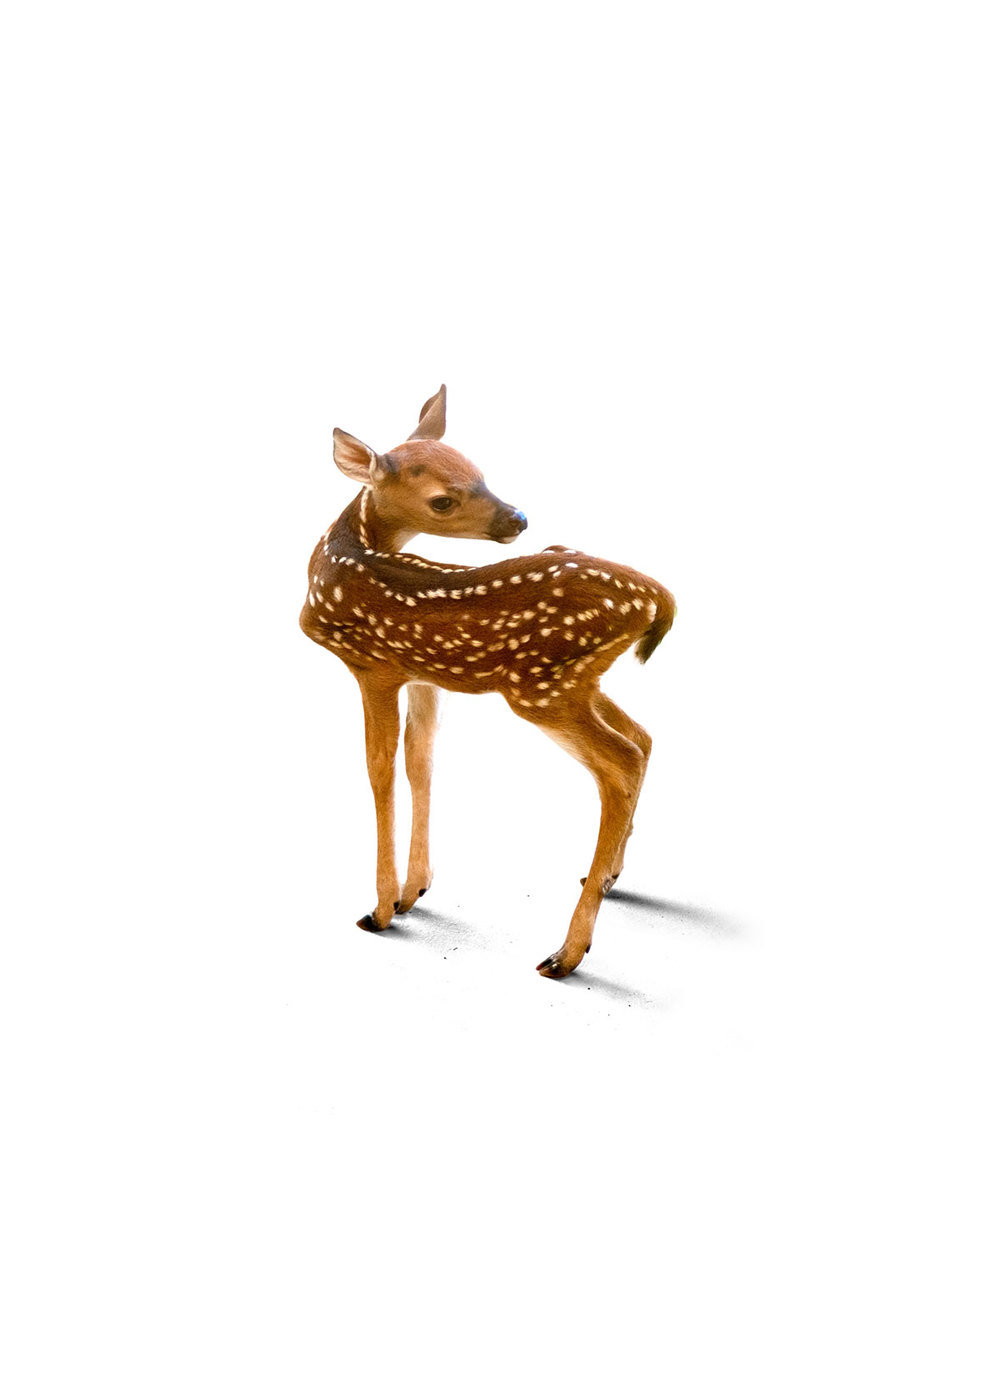 A Deer Friend